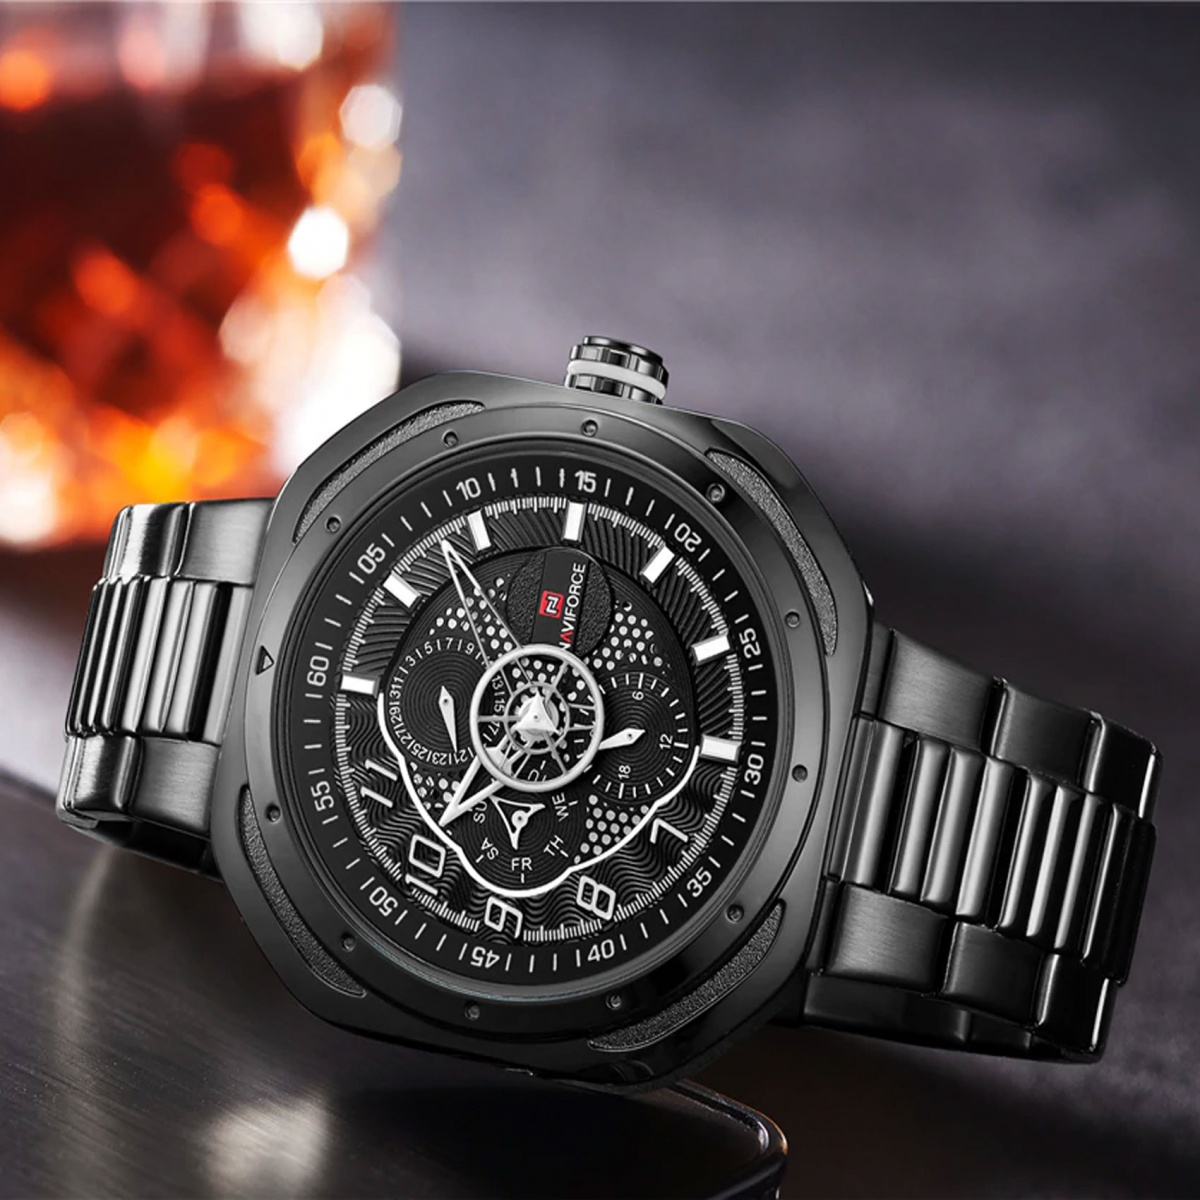 Naviforce LG9141SBWB Stainless Chrono Watch - Black